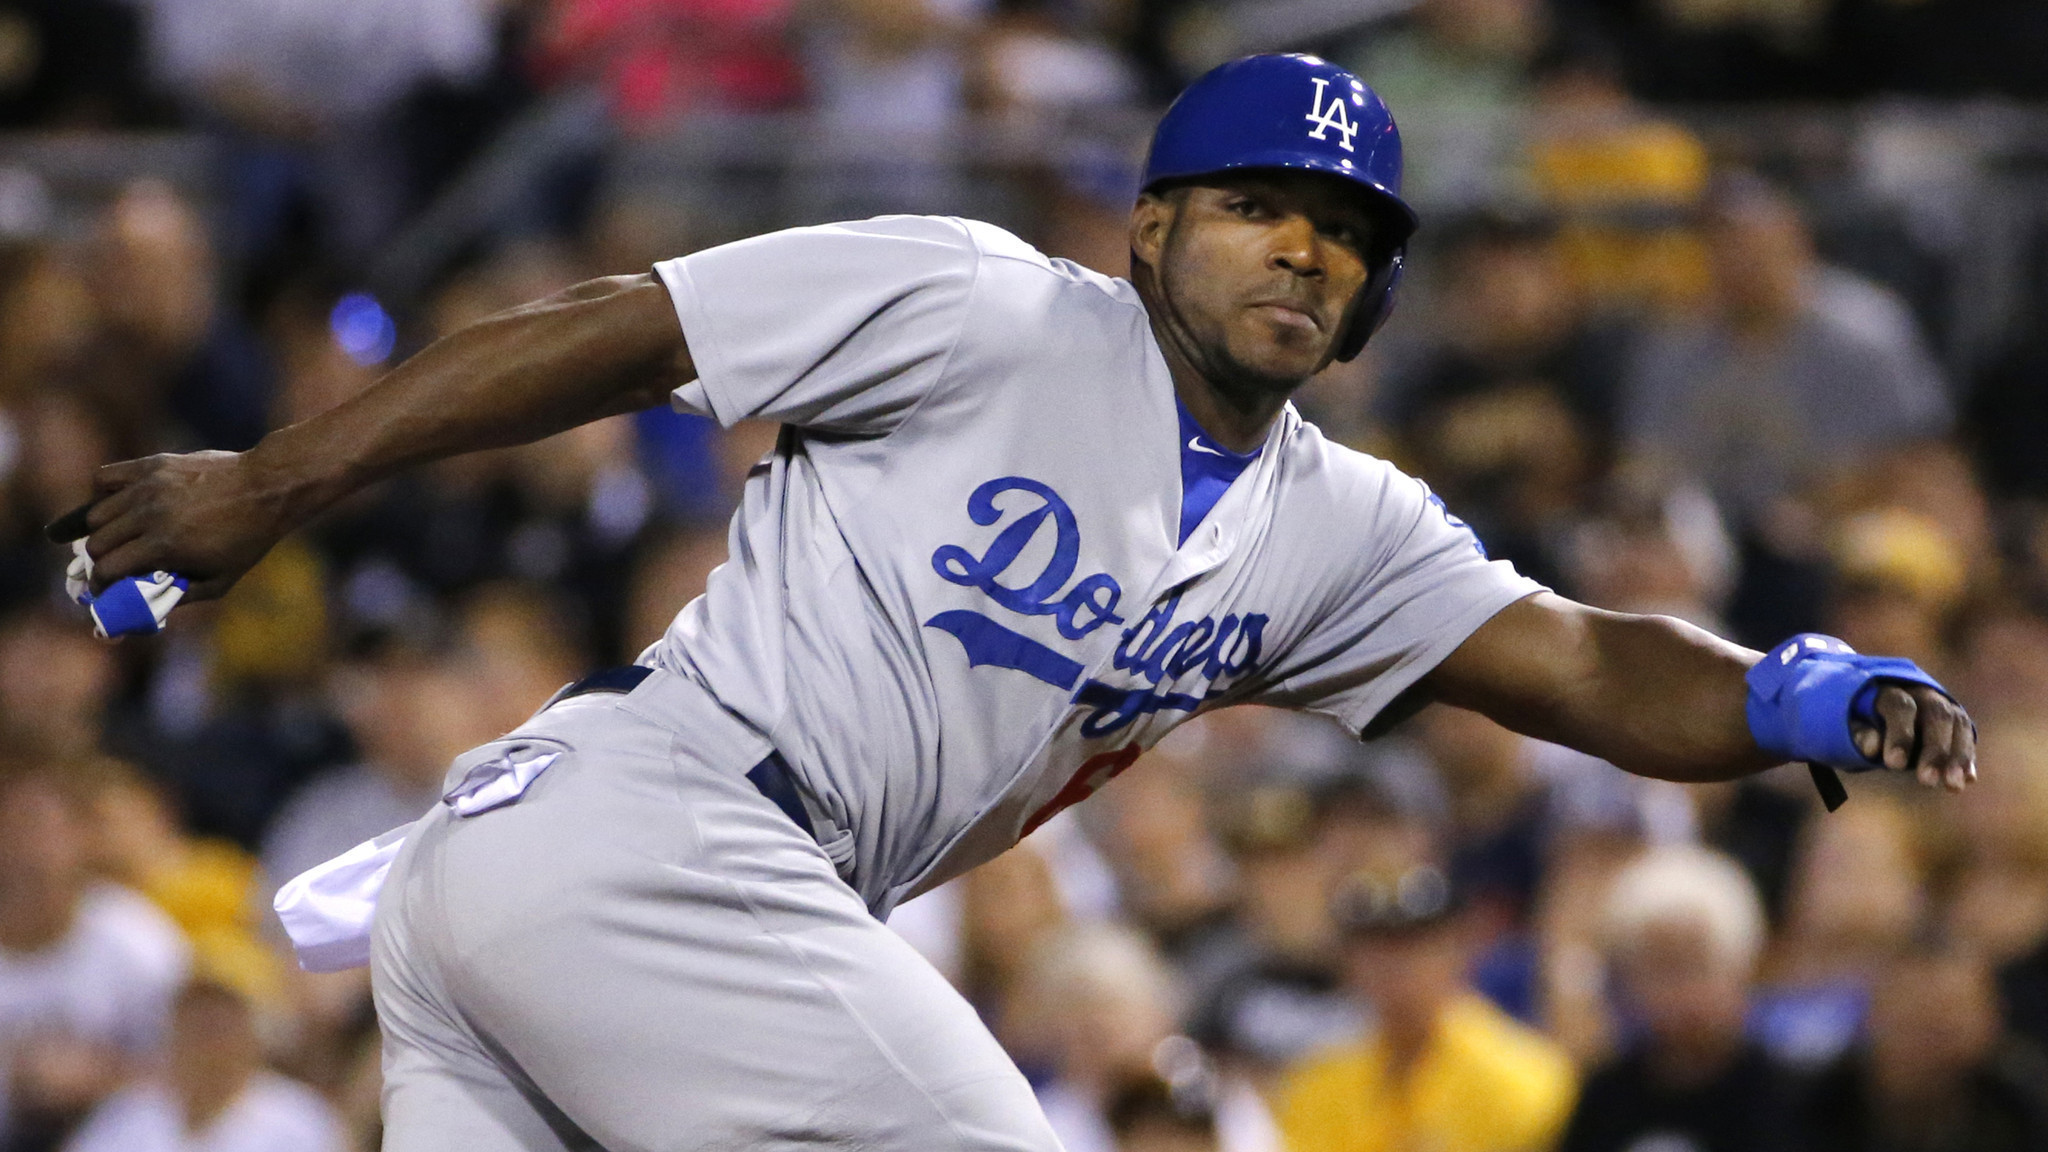 Dodgers experiment with Yasiel Puig in center field during loss